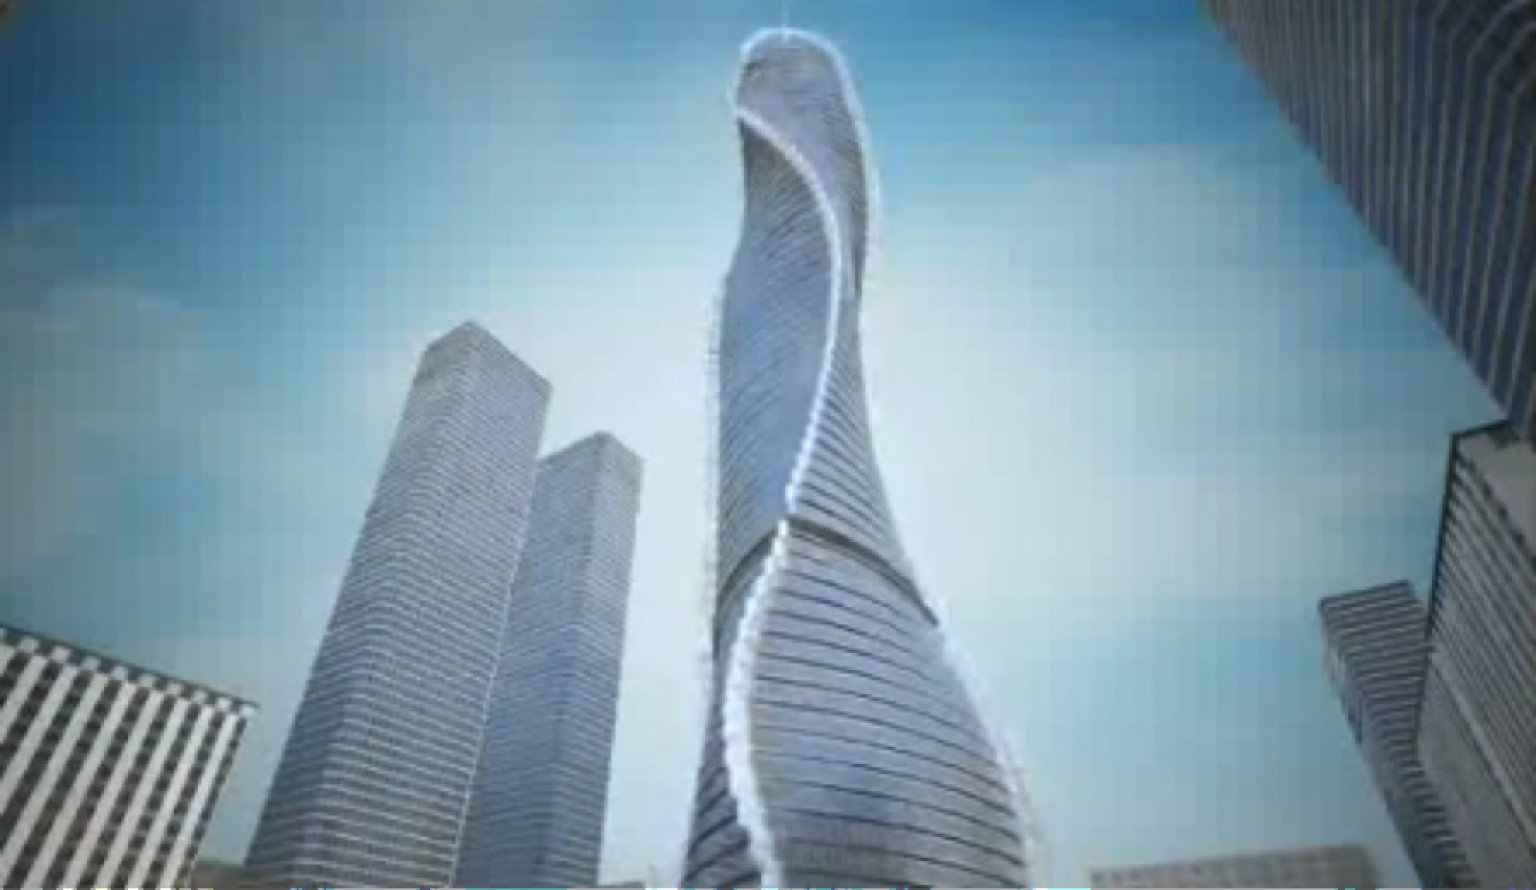 Massive Rotating Skyscraper Is An Actual Design By Dynamic